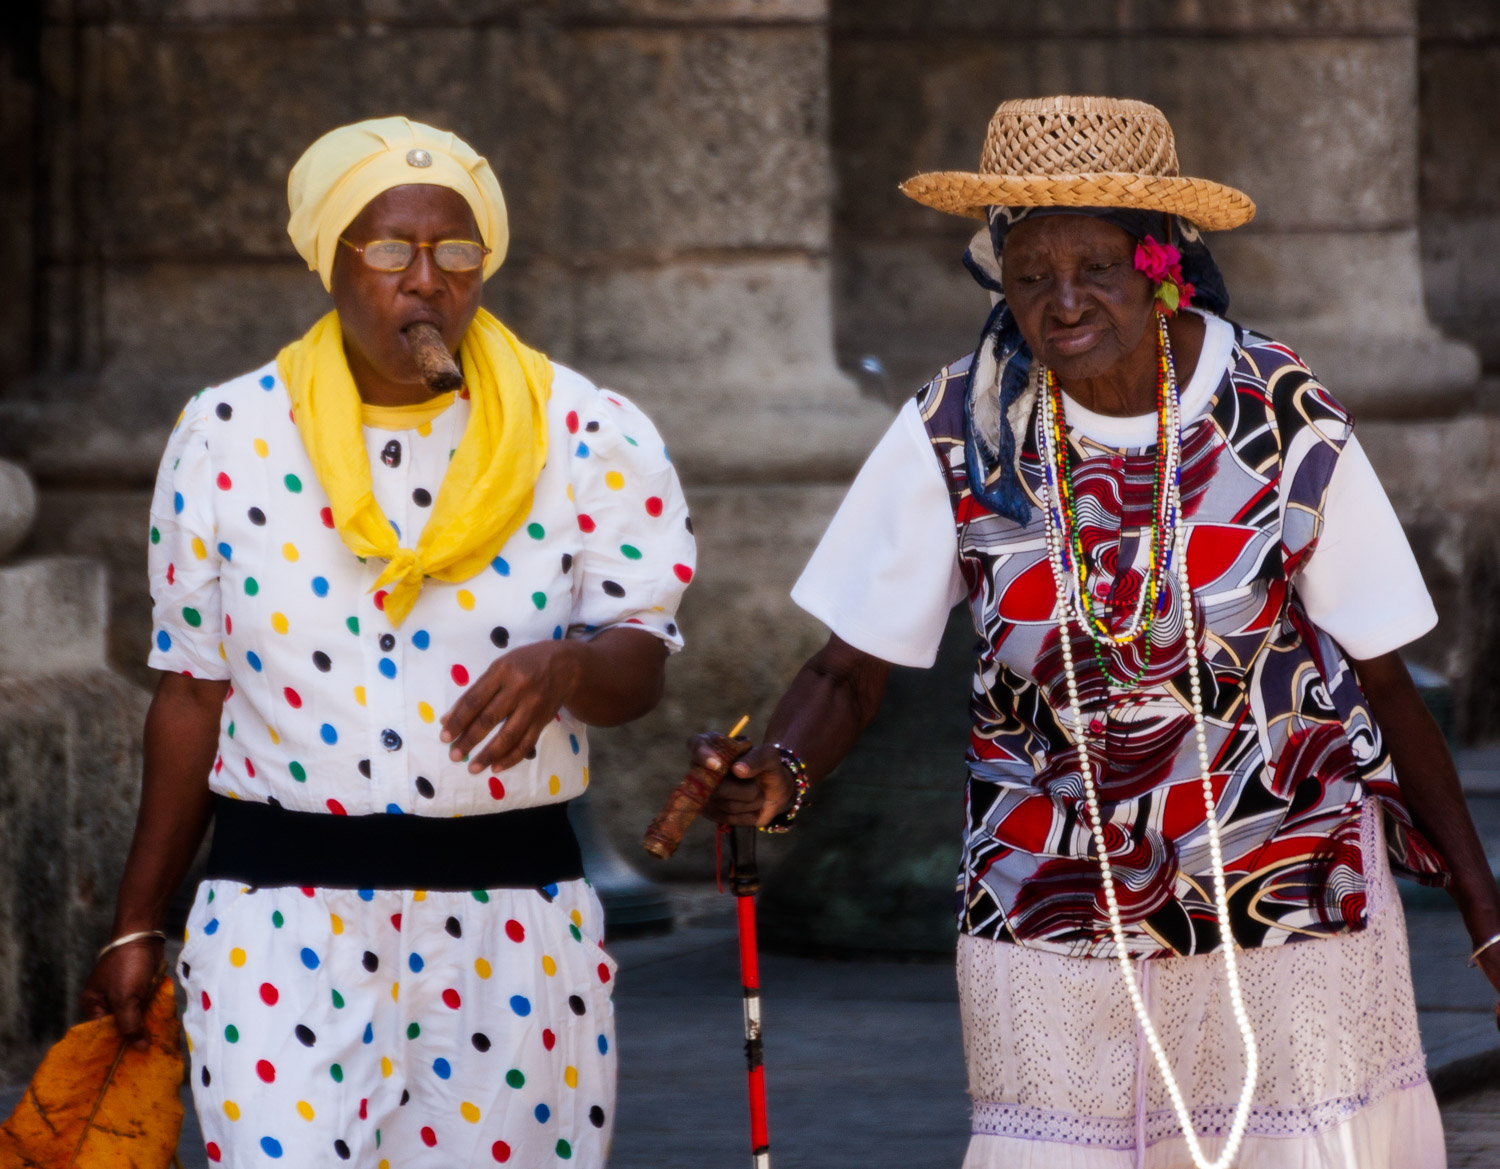 cuban people-16-Edit.jpg